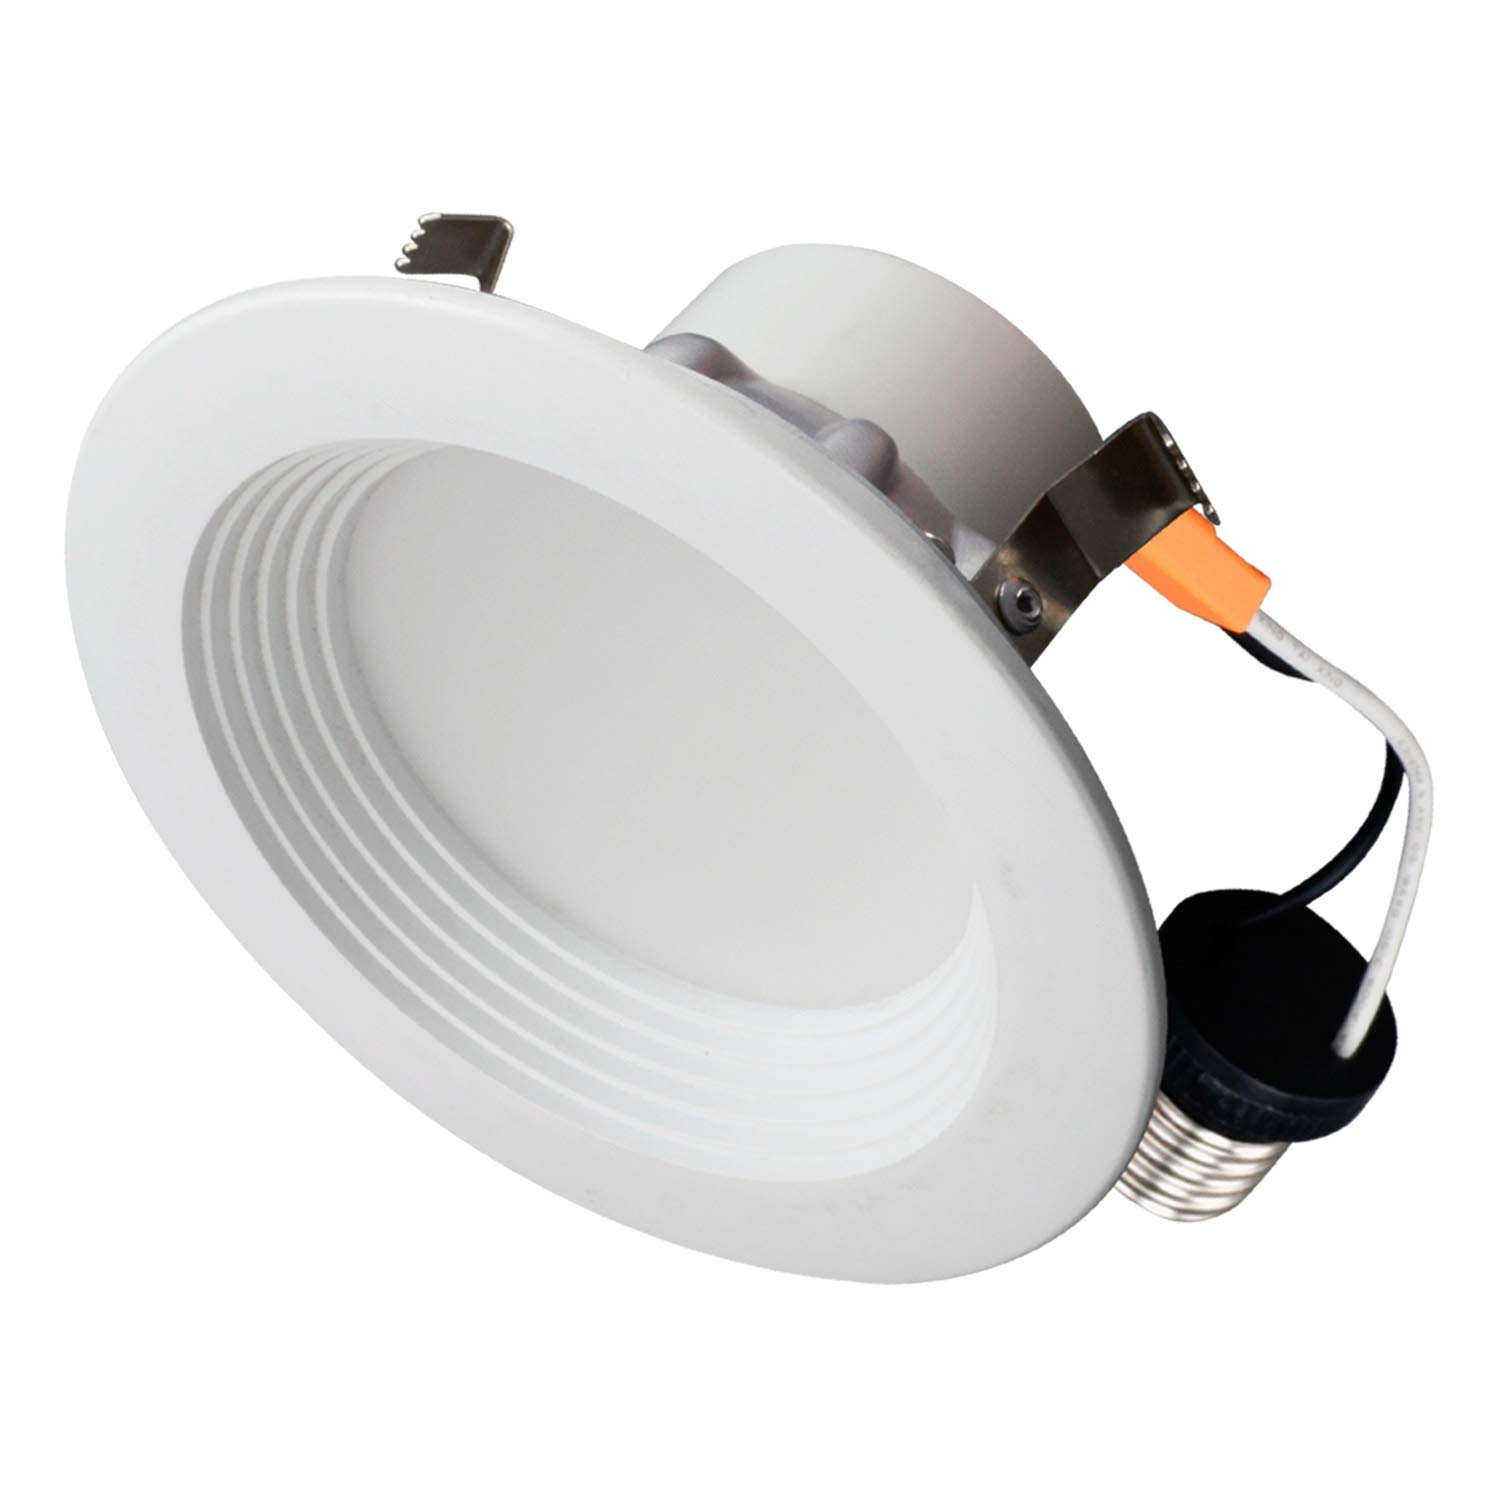 50W Replacement Dimmable 650 Lm 10W 4000K Bright White 1 Pack ...